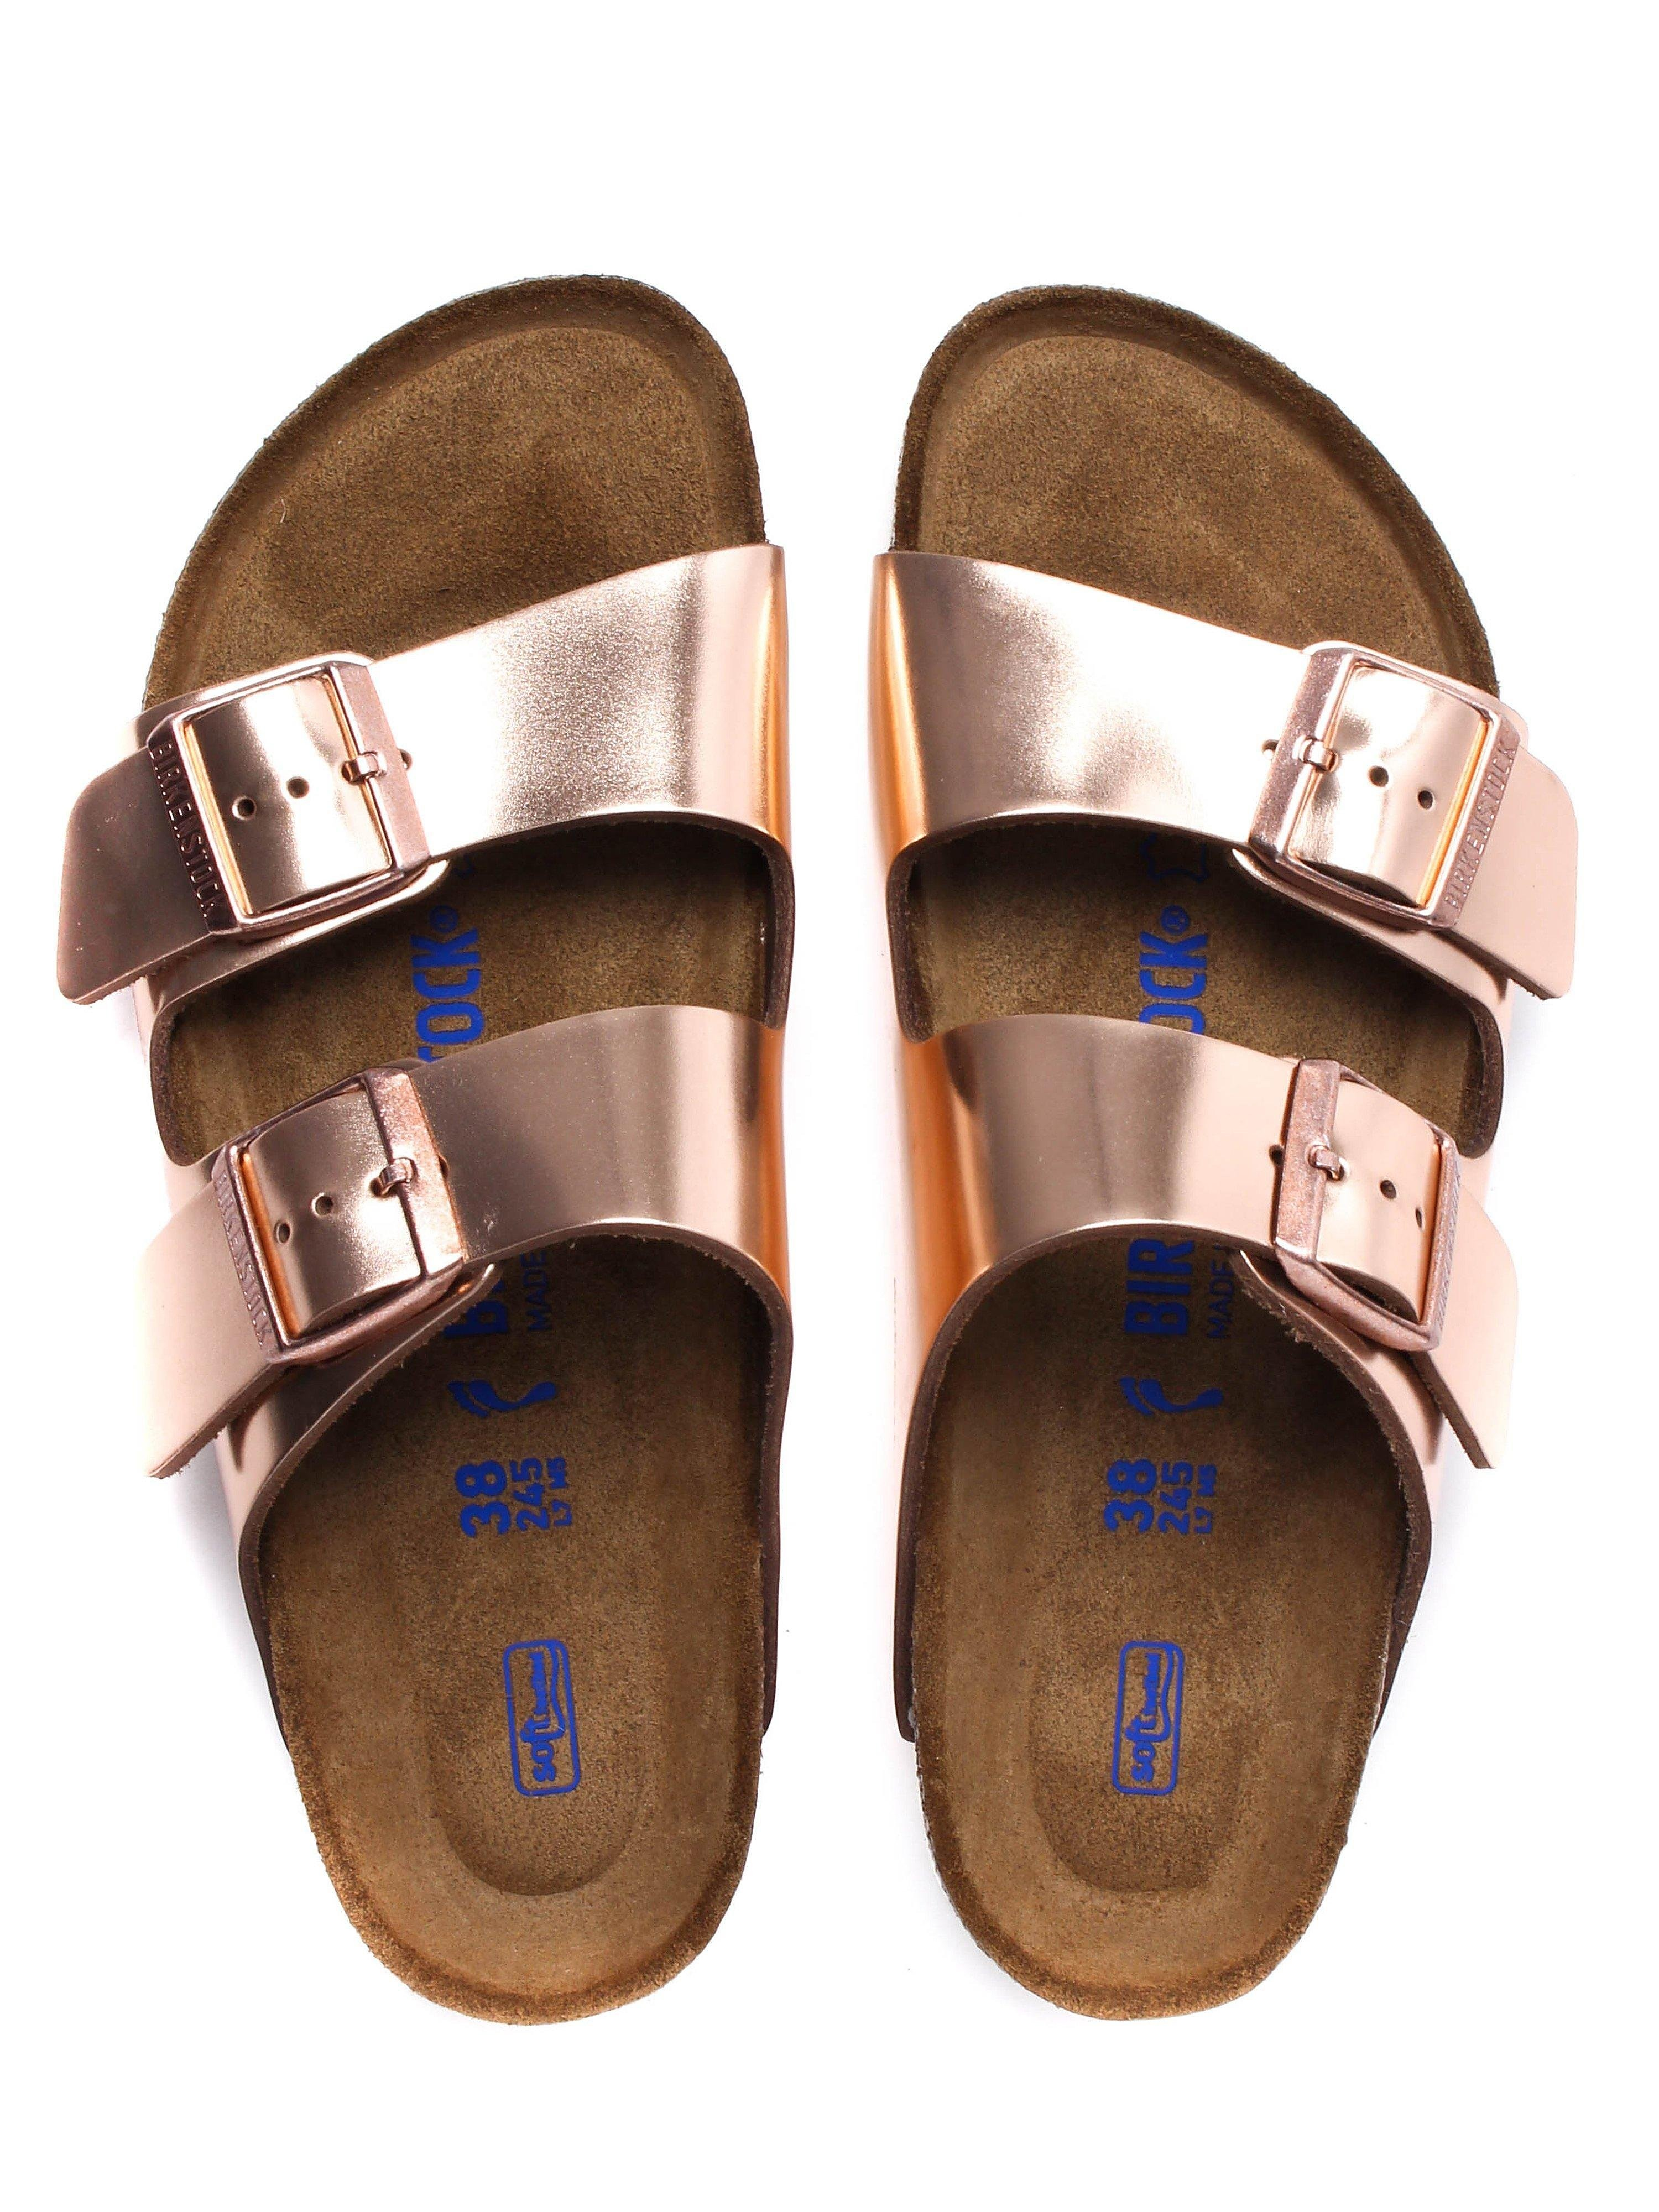 Birkenstock Women's Arizona Narrow Fit Sandals - Metallic Copper Leather